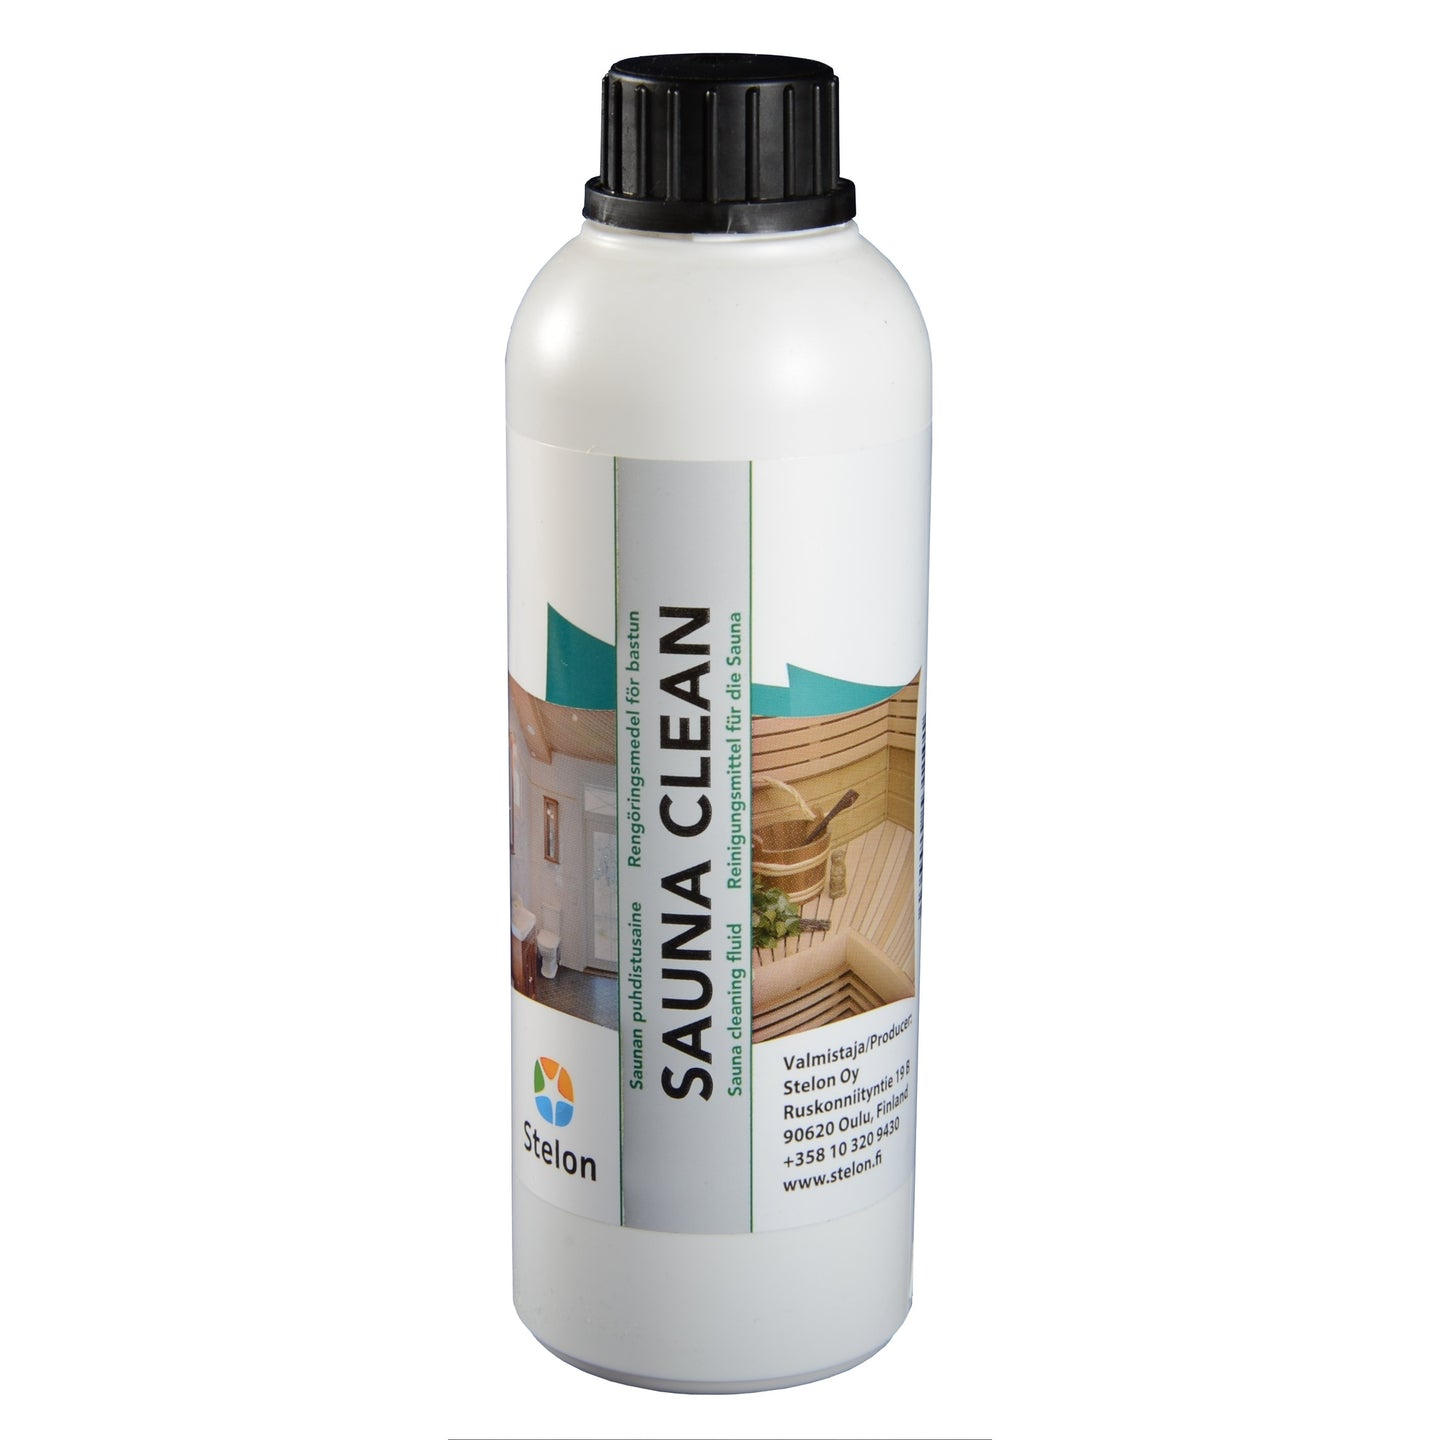 Sauna Clean - Specialist Sauna Wood Cleaner 0.5 Litre  Sauna Cleaning & Wood Treatment Finnmark Sauna